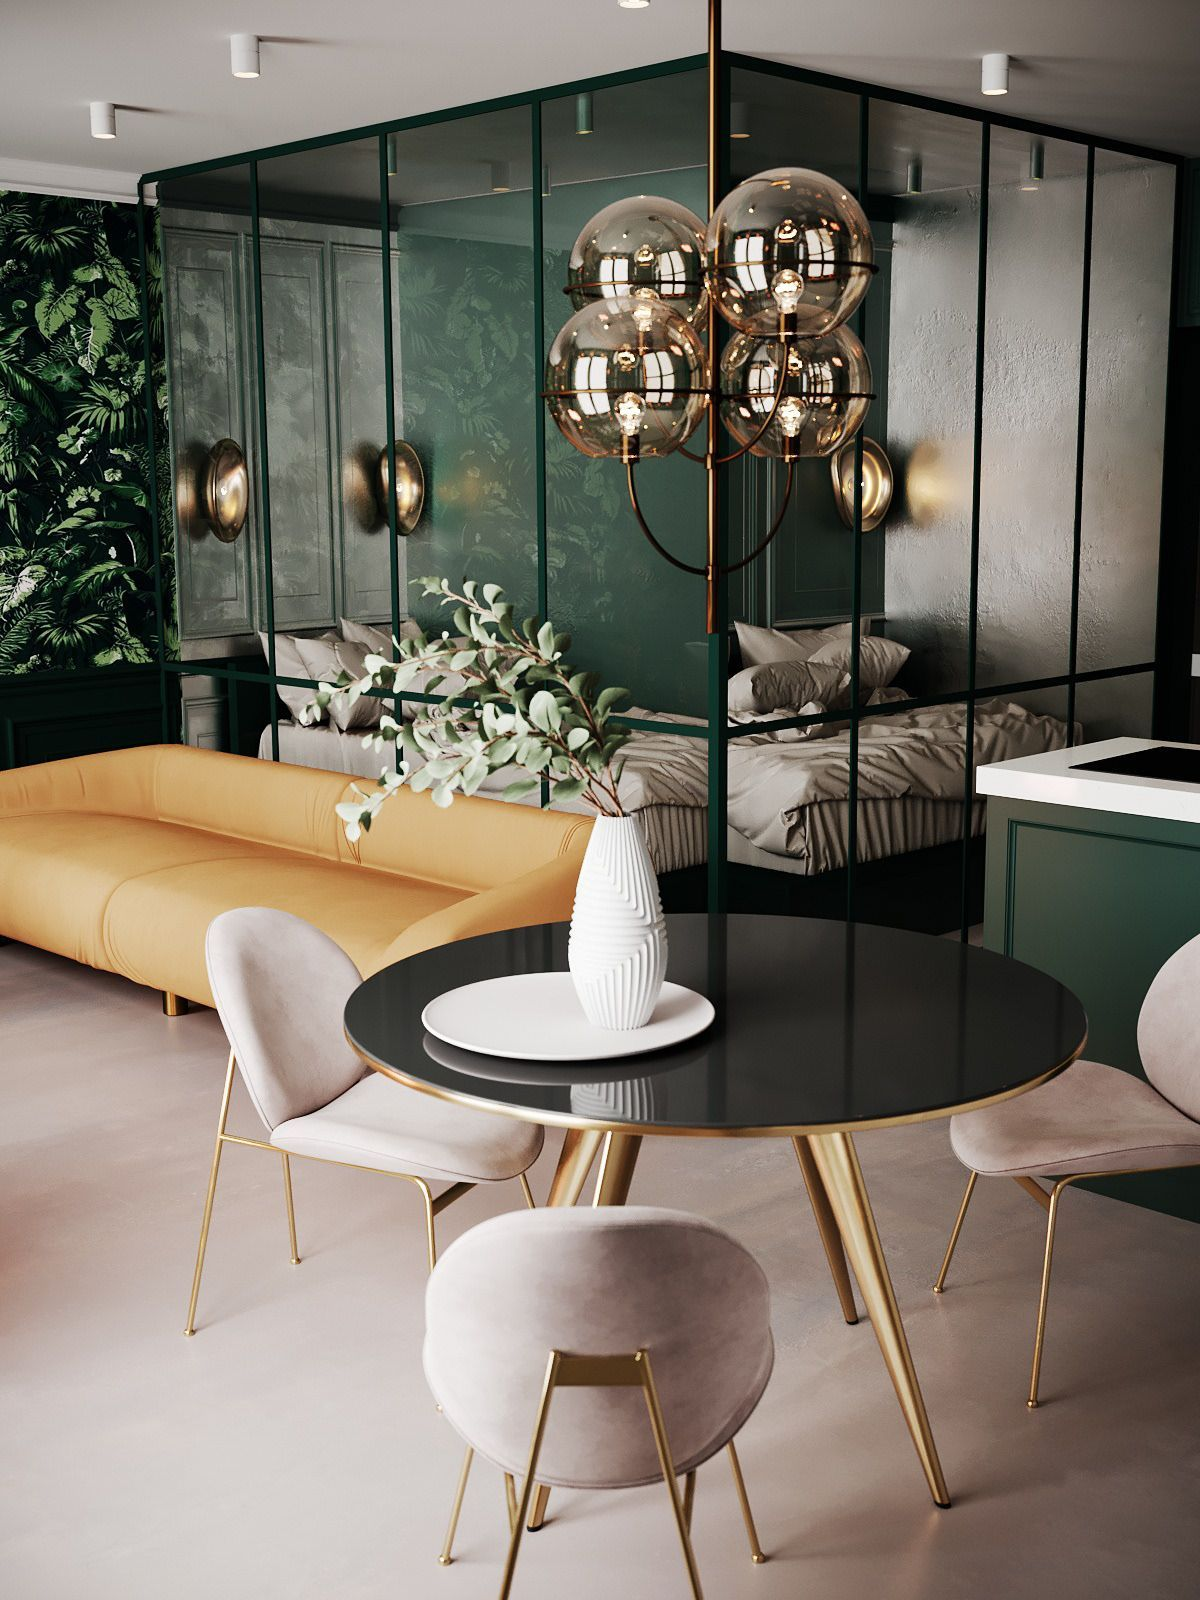 New York concept house on Behance | Dining Room//Salle à ...